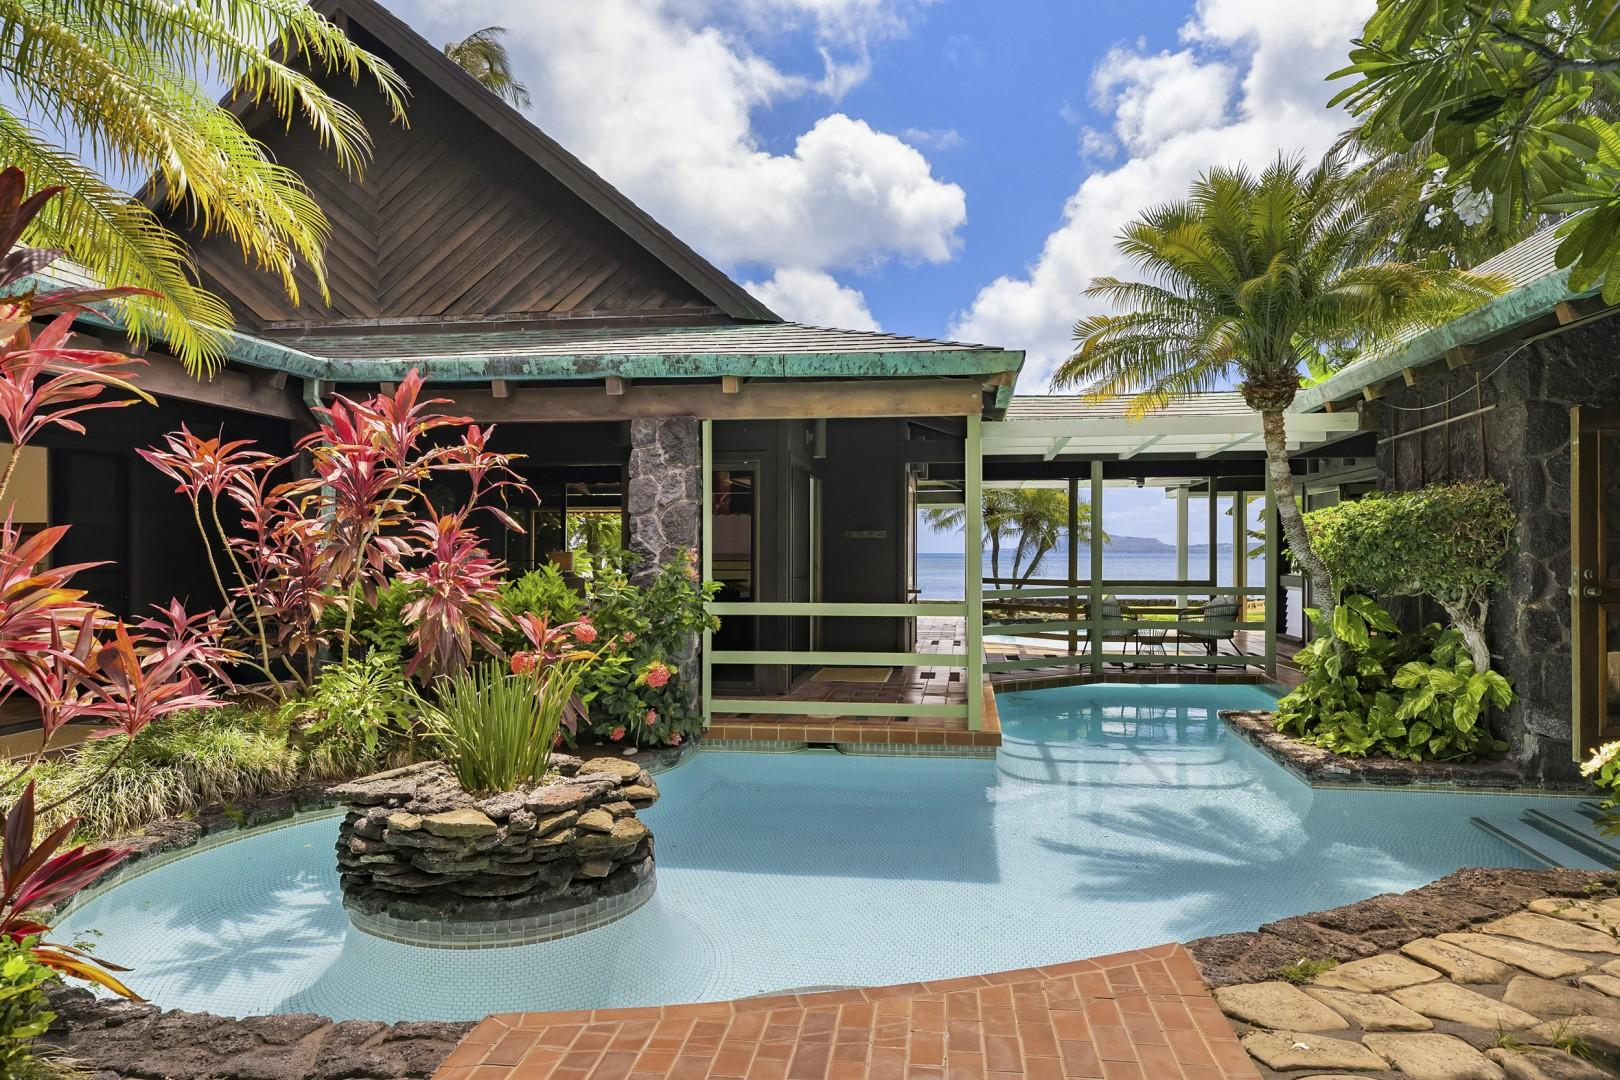 Large resort-style pool meanders through courtyard towards oceanfront lawn.